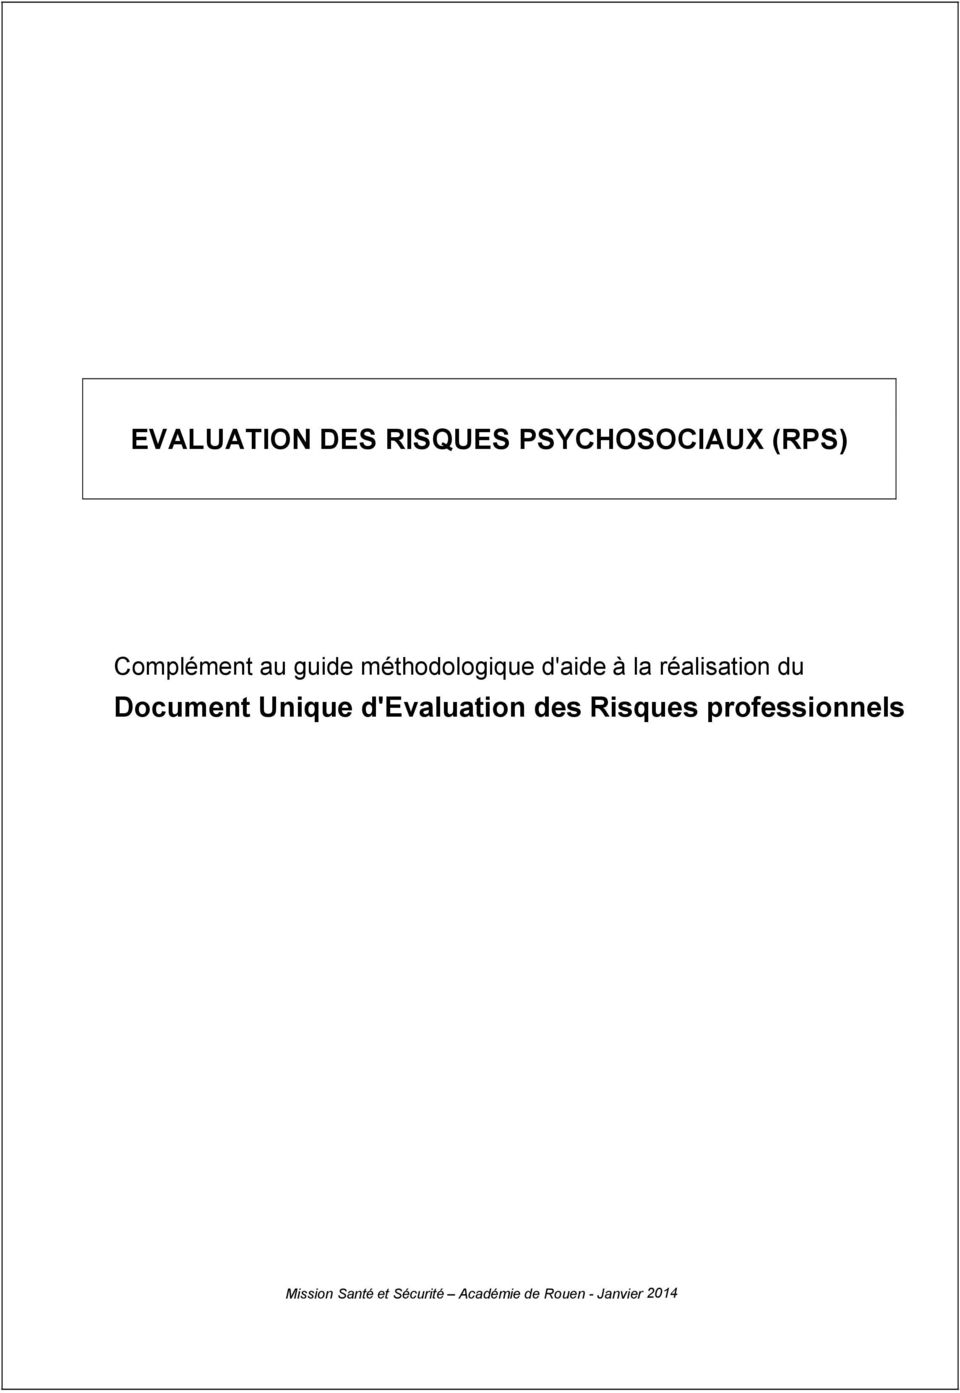 Document Unique d'evaluation des Risques